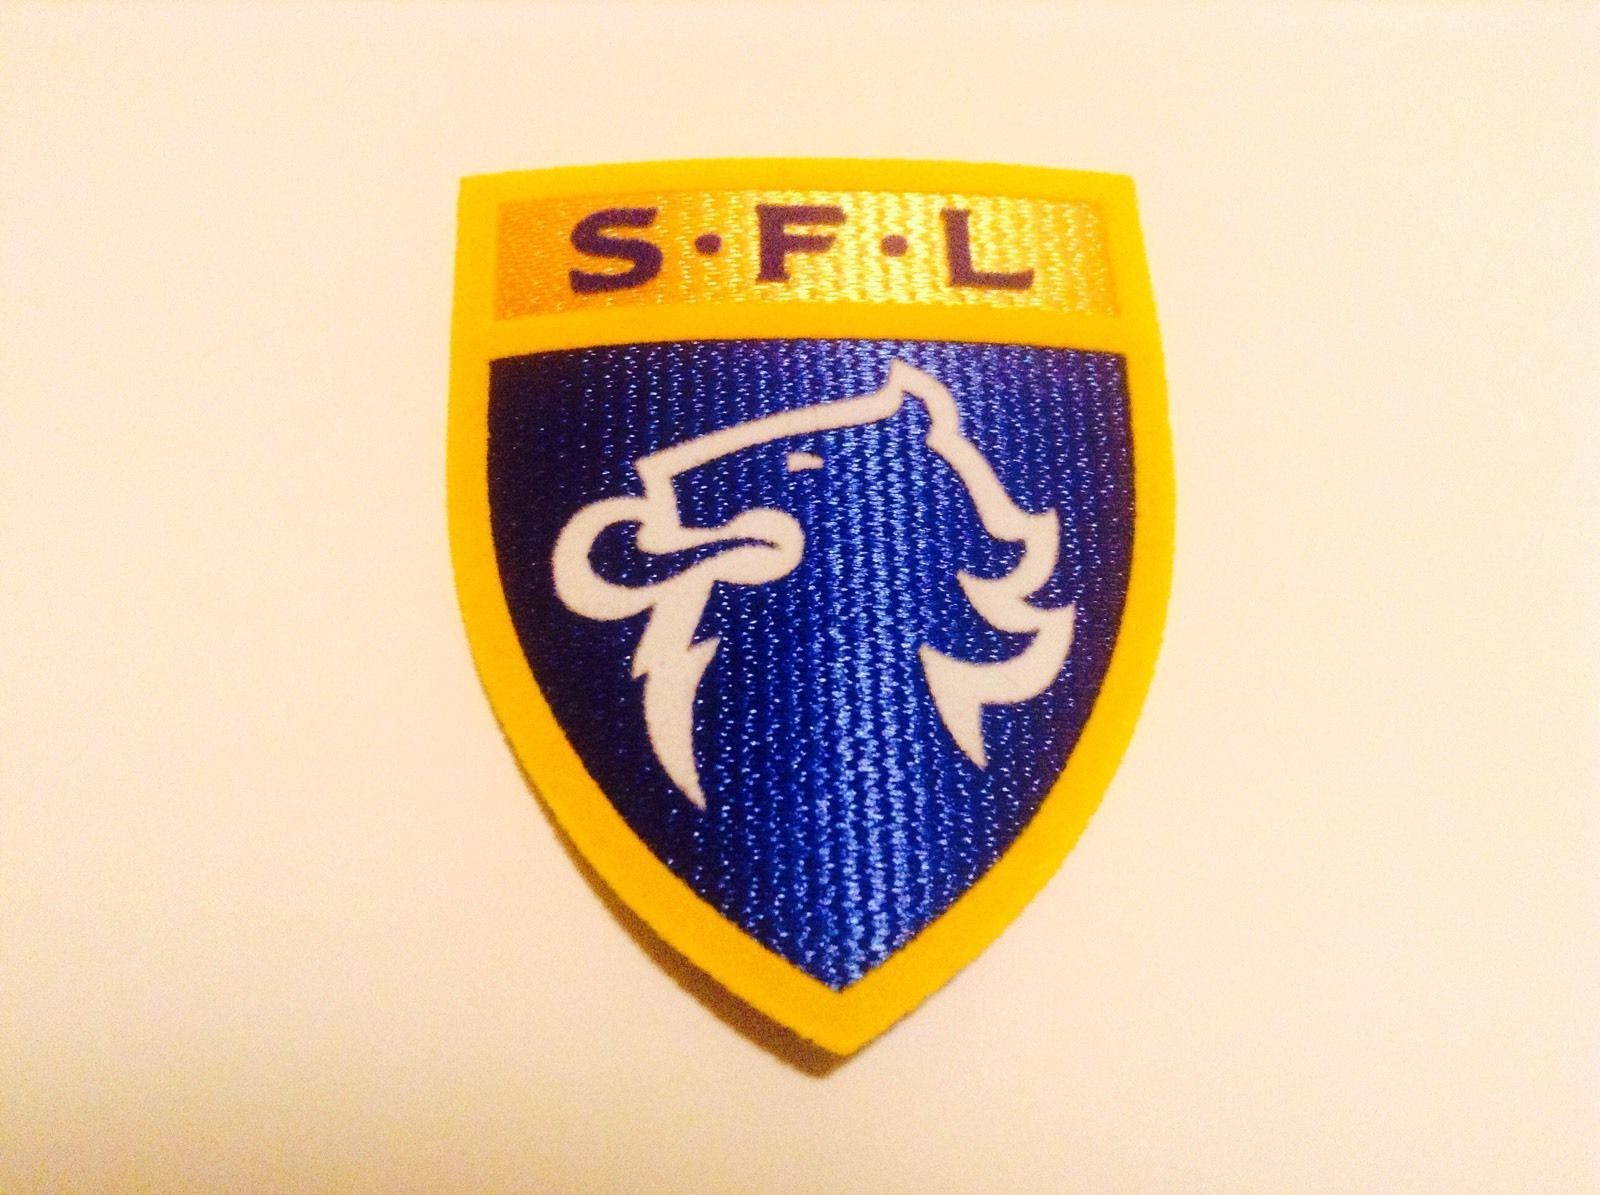 Scottish Clubs Football Badges Pins eBay